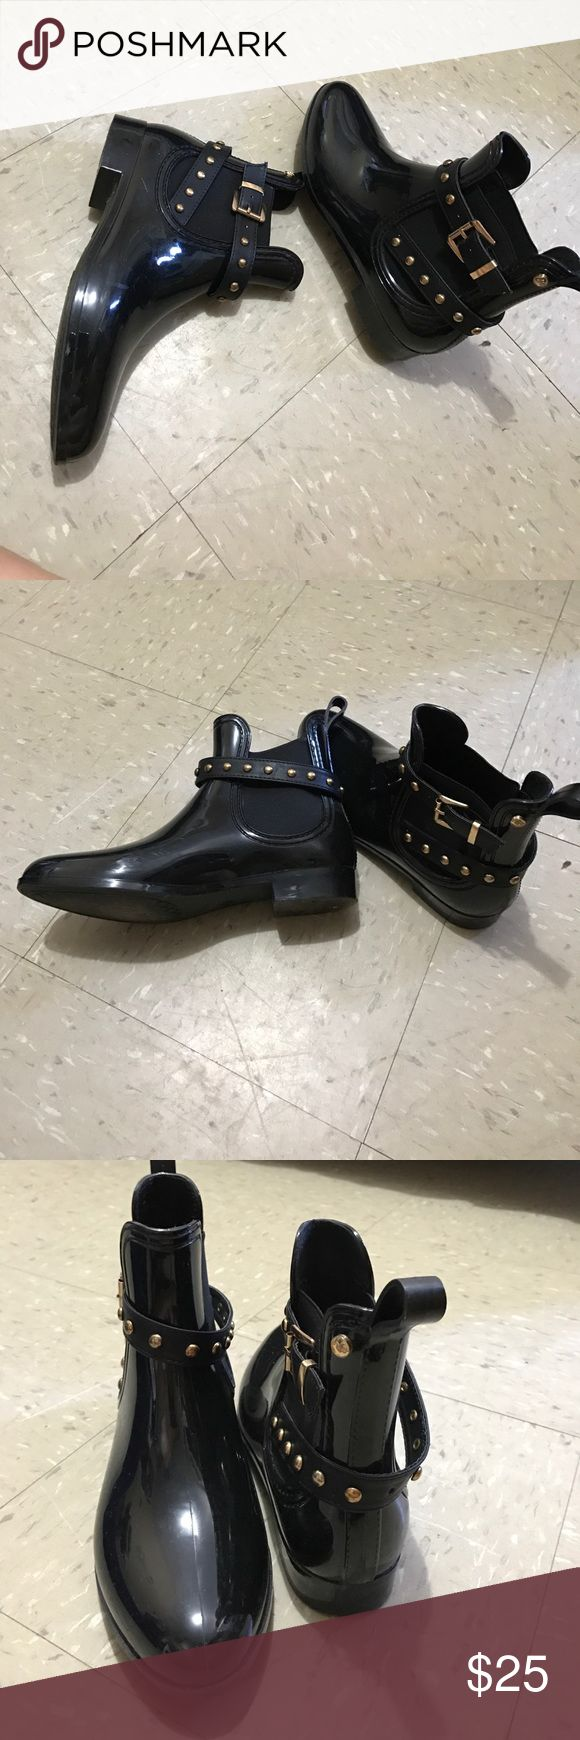 Short black rain boots  ☔️ Stylish rain boots with gold around the strap. Used twice. The boots are in good condition. Henry Ferrera  Shoes Winter & Rain Boots